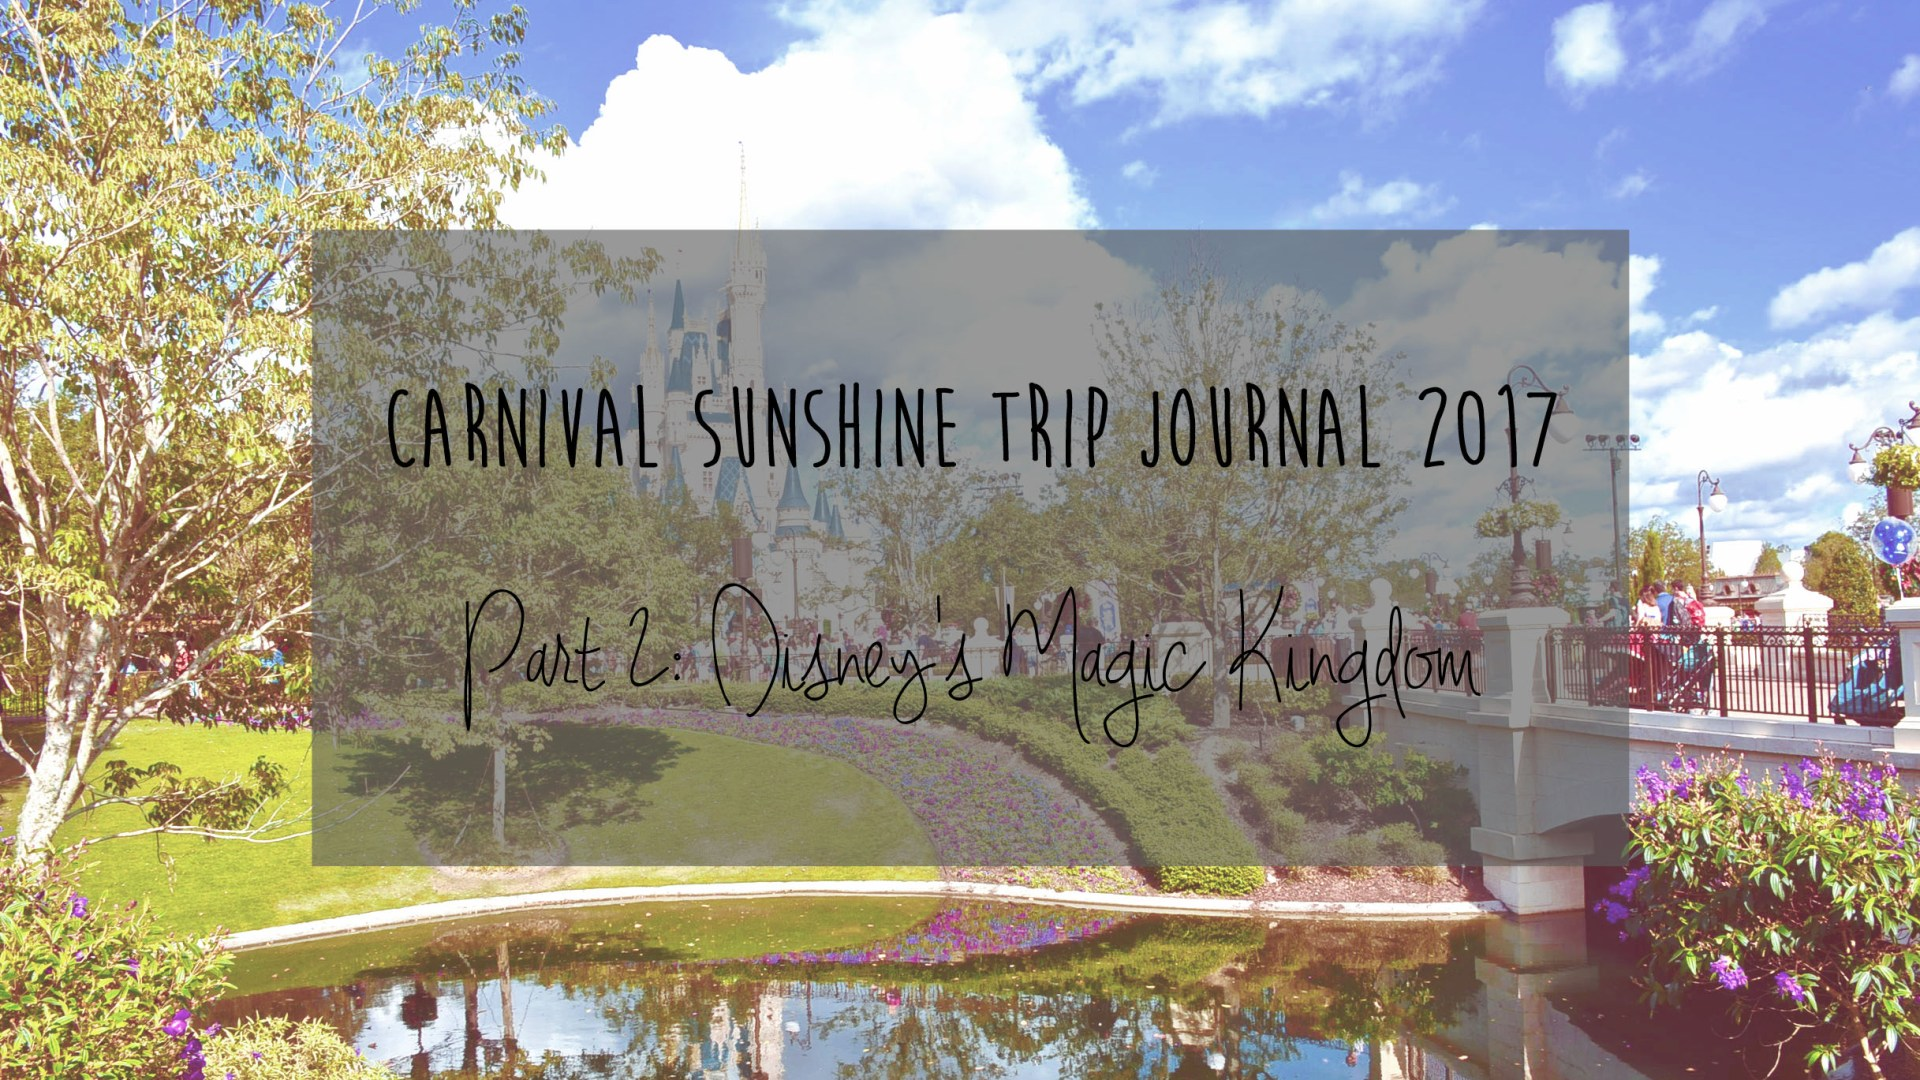 Carnival Sunshine Trip Journal: Part 2 – Disney's Magic Kingdom